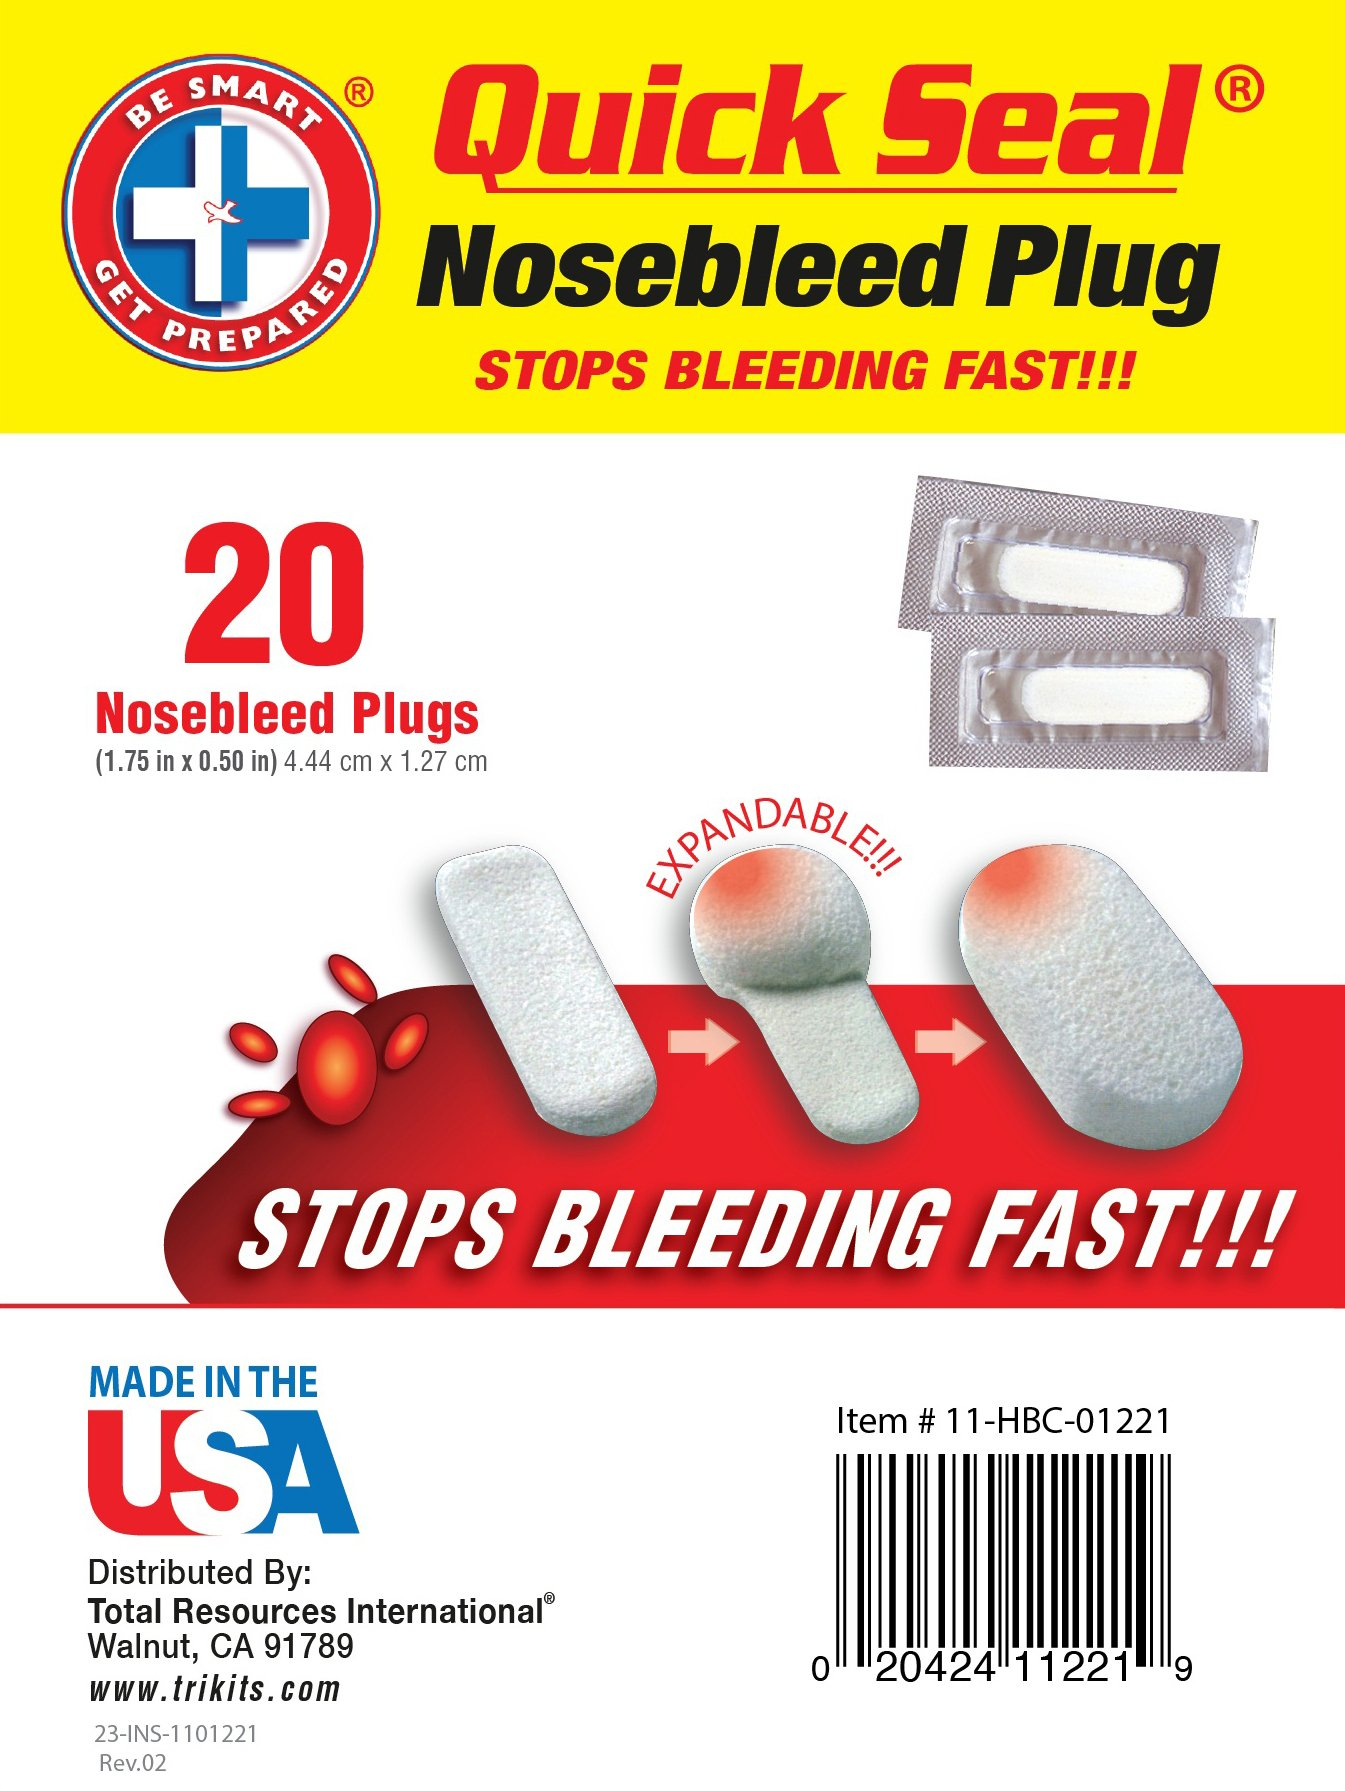 Be Smart Get Prepared Quick Seal Nosebleed Plugs. Stops Bleeding Fast, Non-Stick and Easy to Remove. (20 Plugs Included). by Be Smart Get Prepared